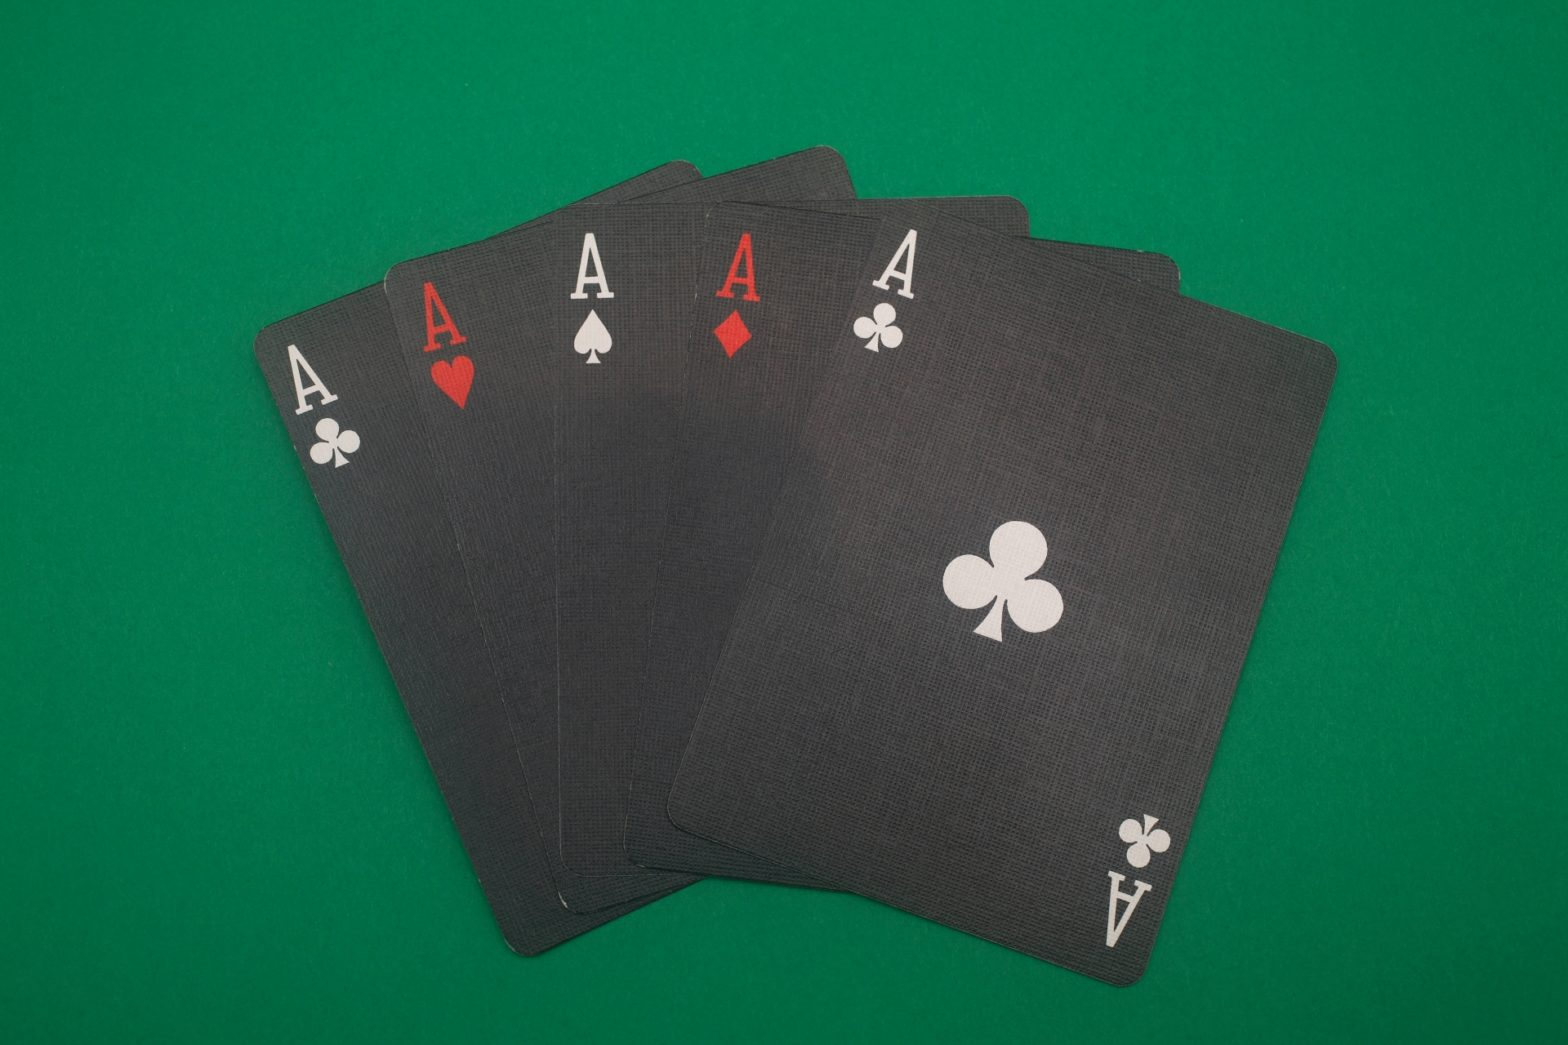 cheating poker hand